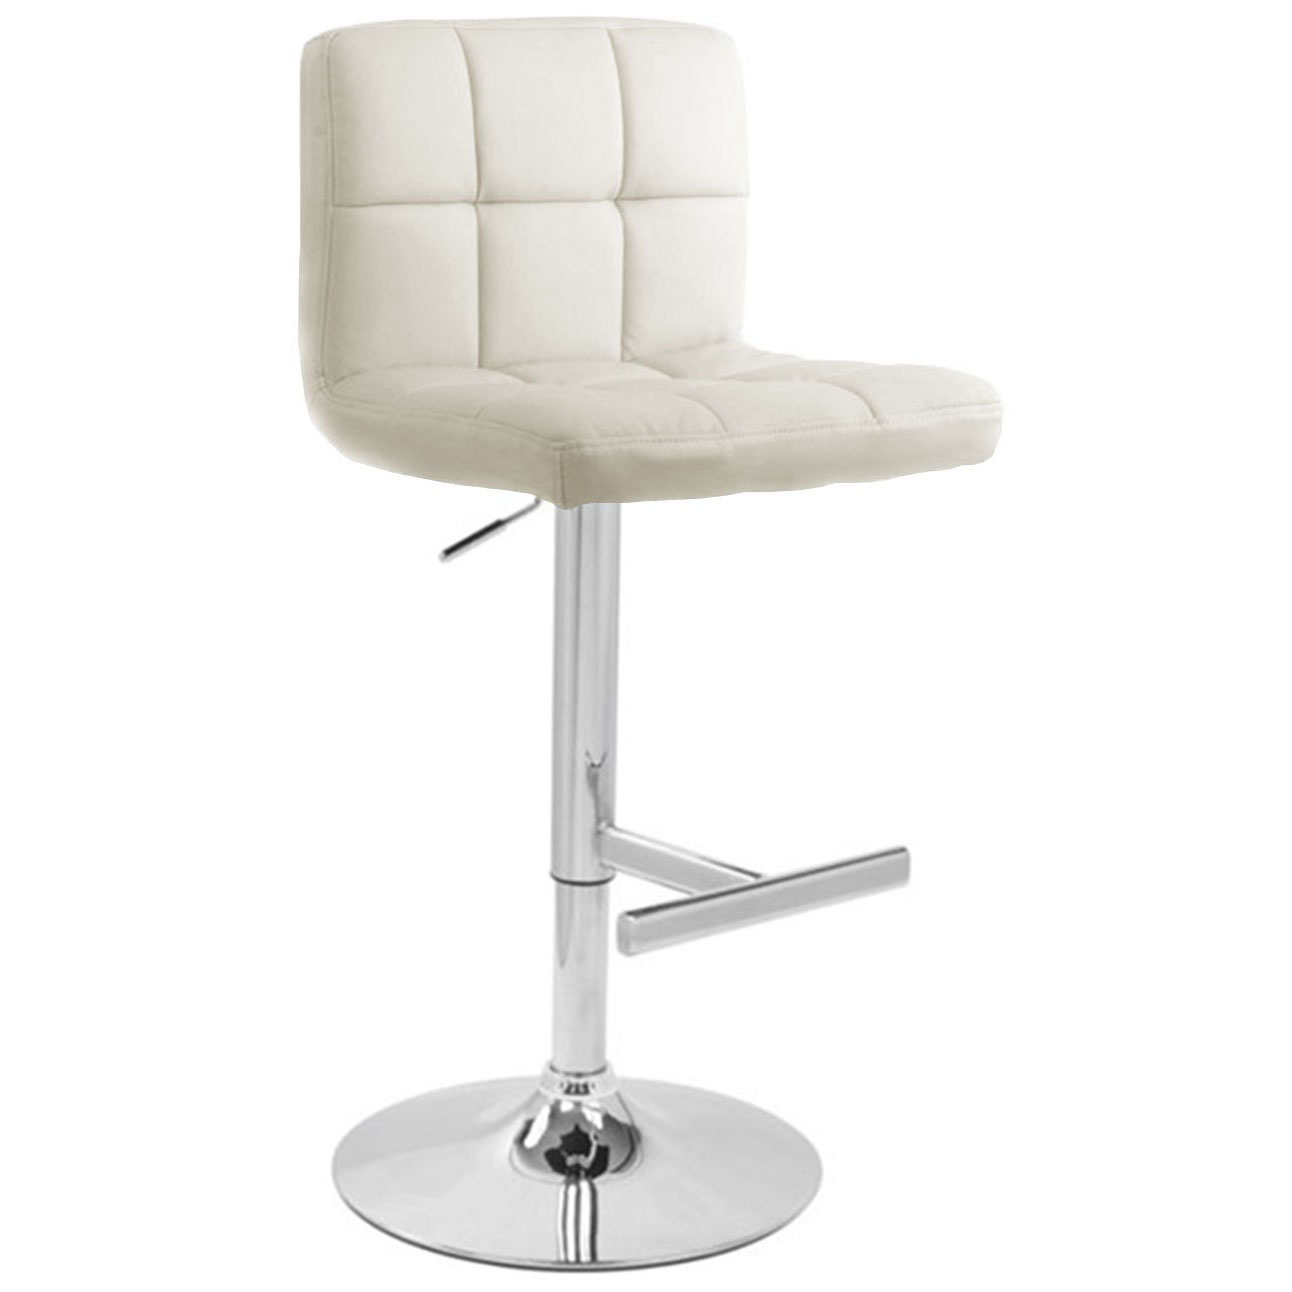 Allegro Leather Bar Stool - White Product Image